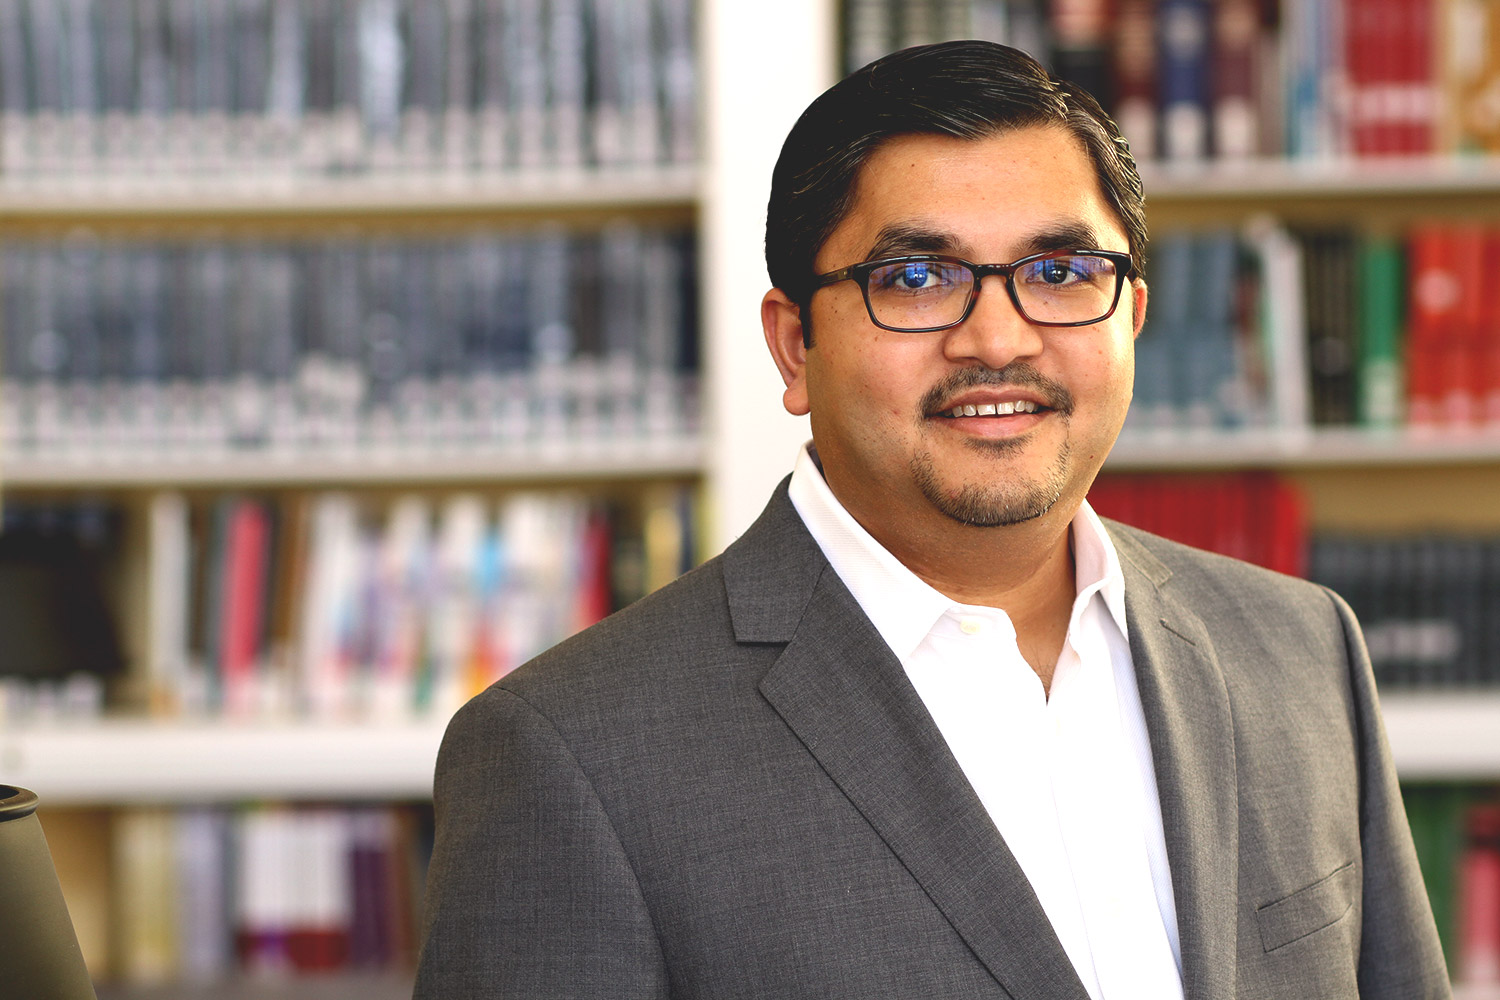 Rajkumar Venkatesan is a professor of marketing in the Darden School of Business. His research on Consumer Lifetime Value recently won an award for its long-term impact on business-to-business marketing practices.